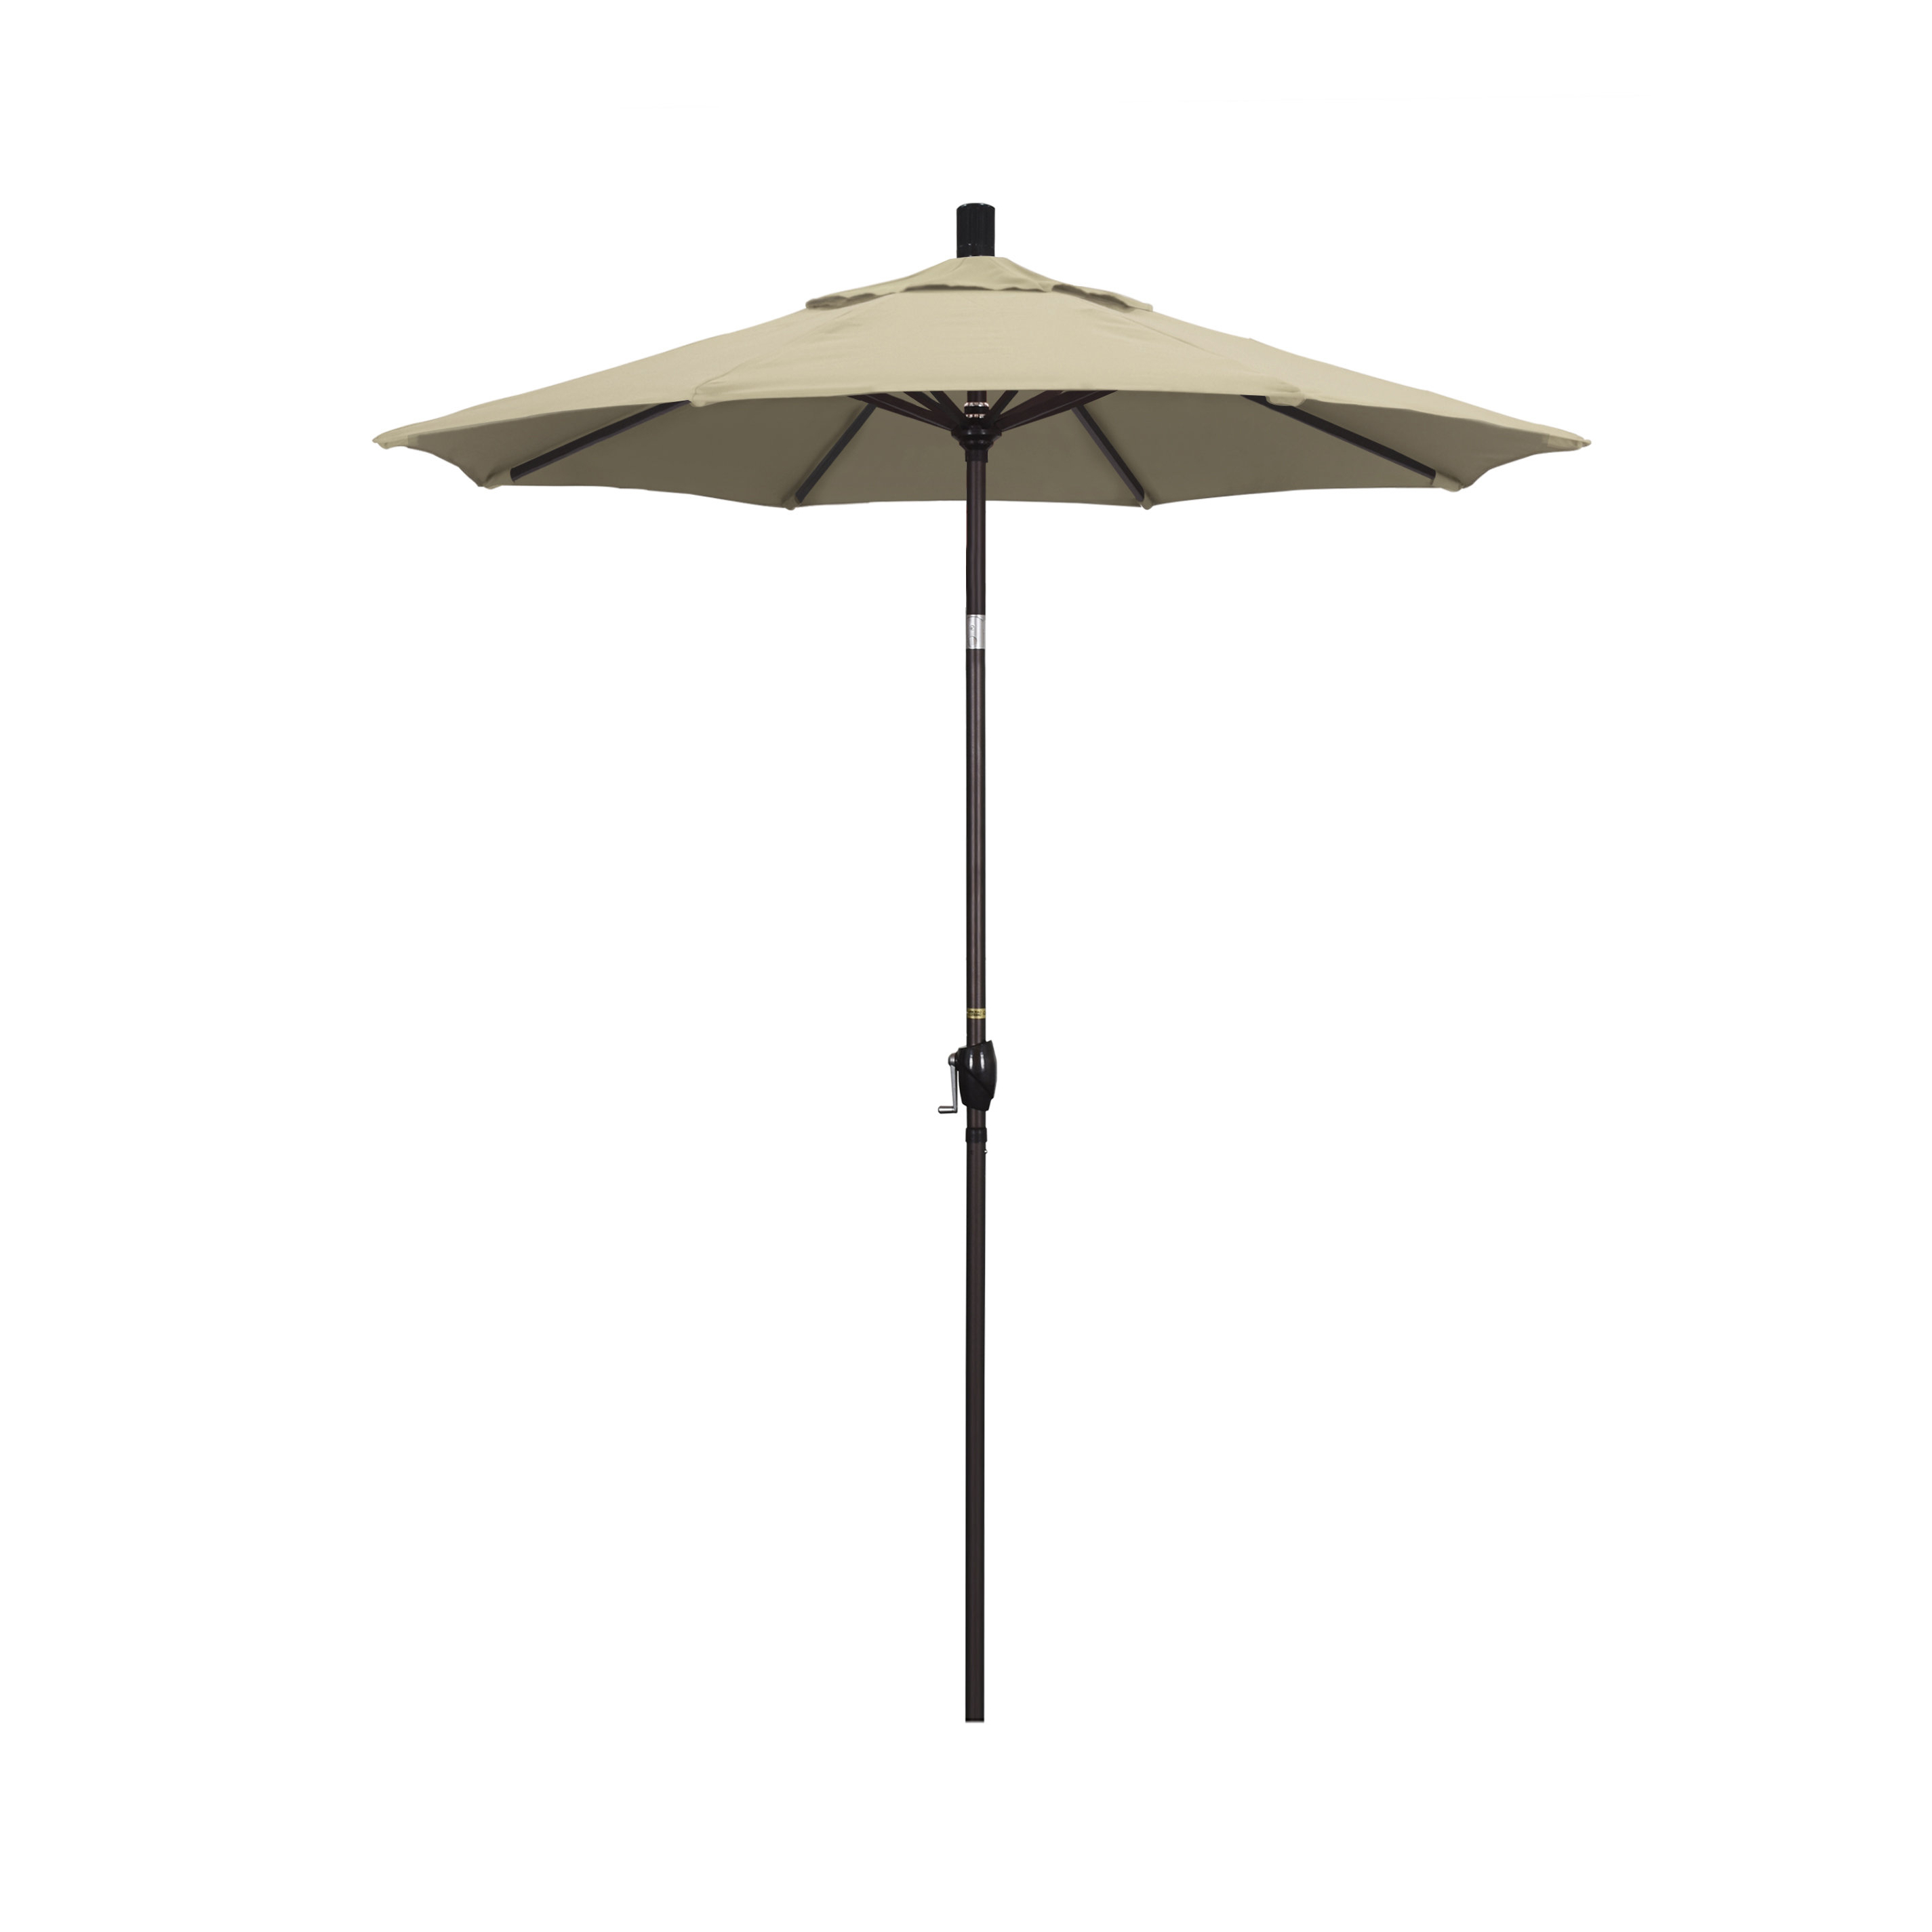 Widely Used Muldoon Market Umbrellas Pertaining To Wallach 6' Market Sunbrella Umbrella (View 11 of 20)